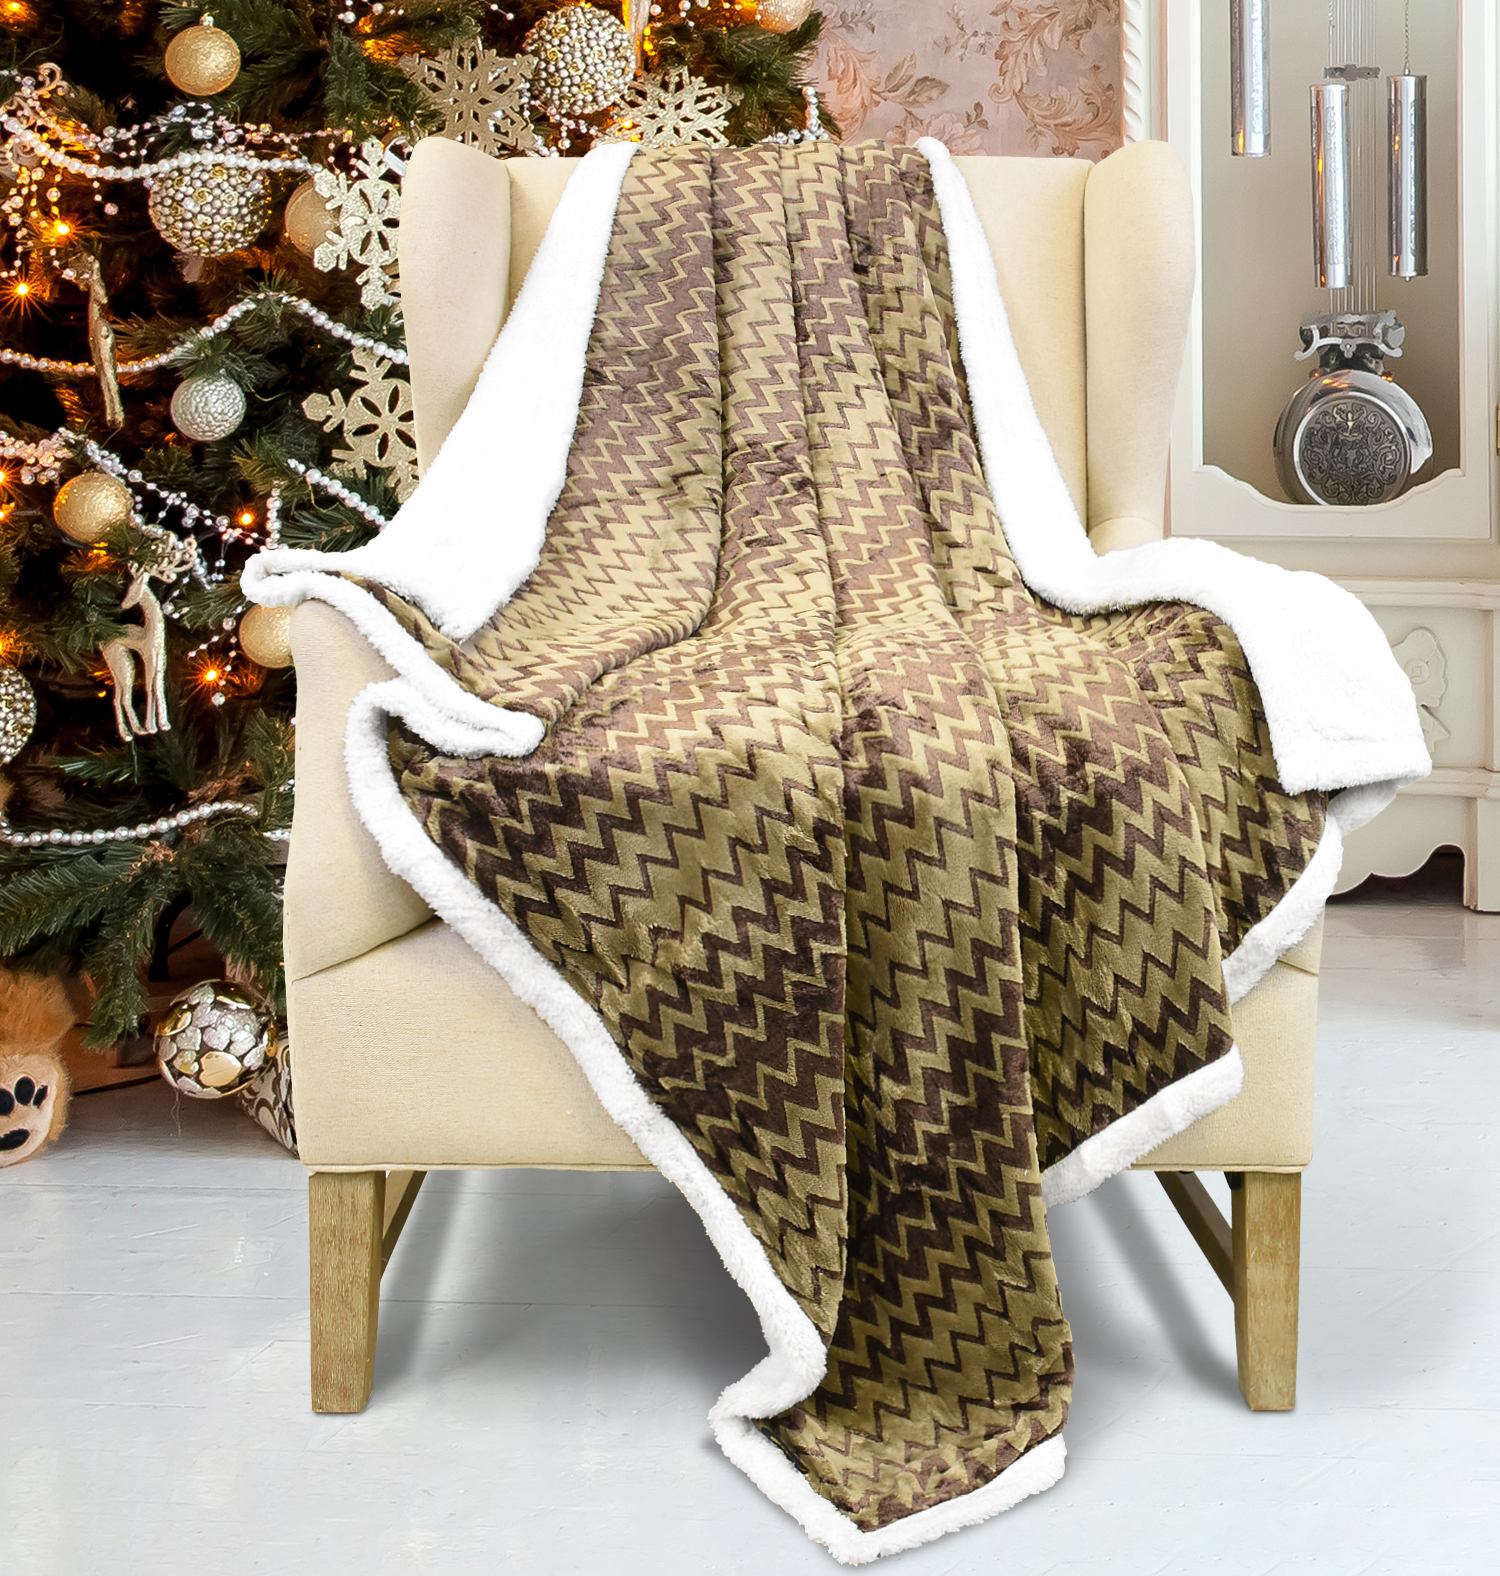 Xmas Throw Blanket Super Soft Flannel Plush Bed Throw TV Blanket Reversible